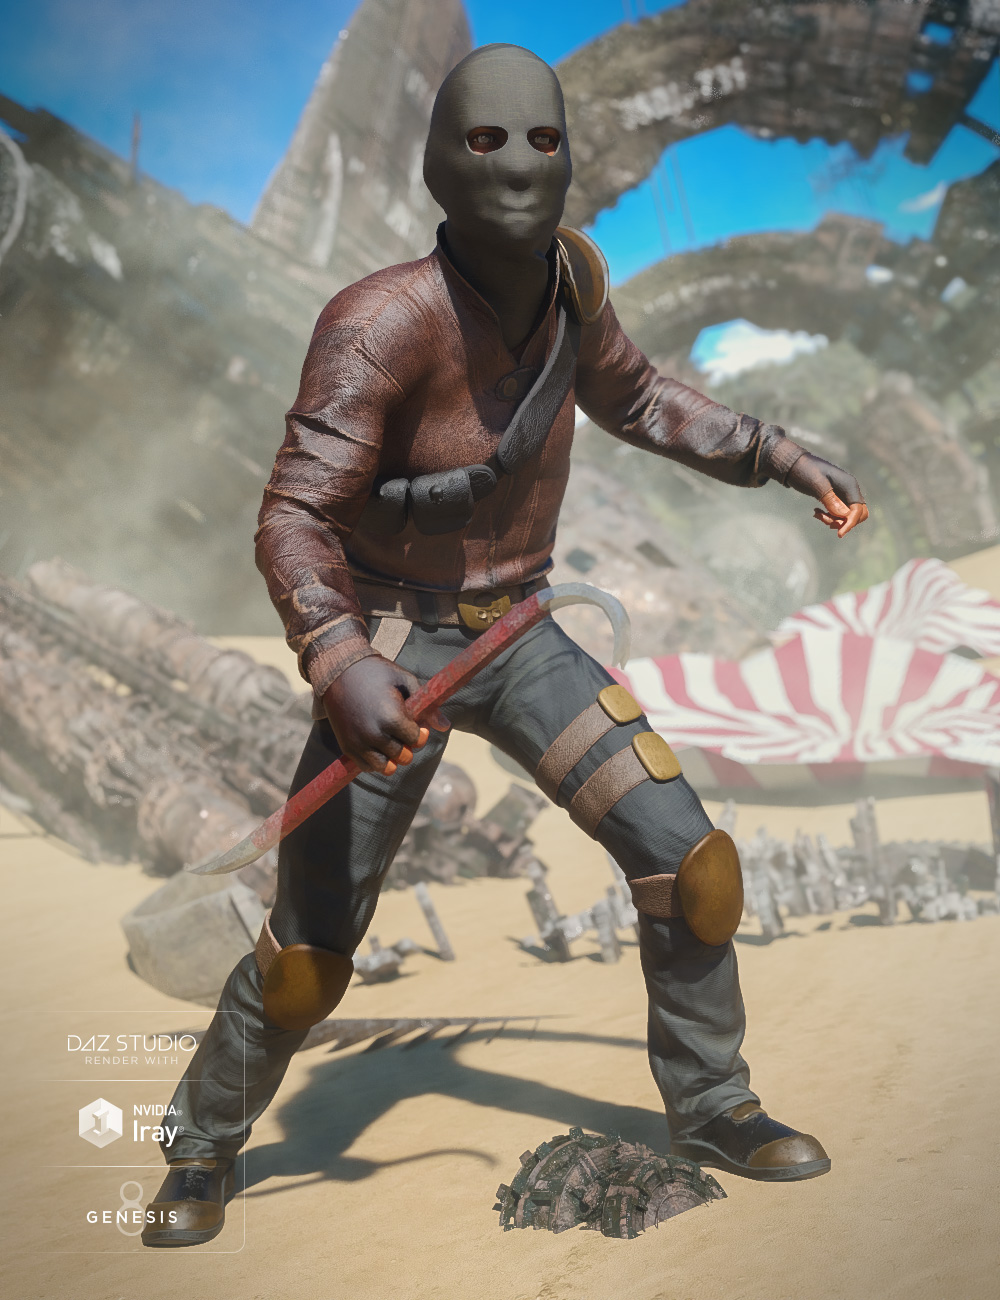 Raider Outfit for Genesis 8 Male(s) by: Moonscape GraphicsSadeYura, 3D Models by Daz 3D